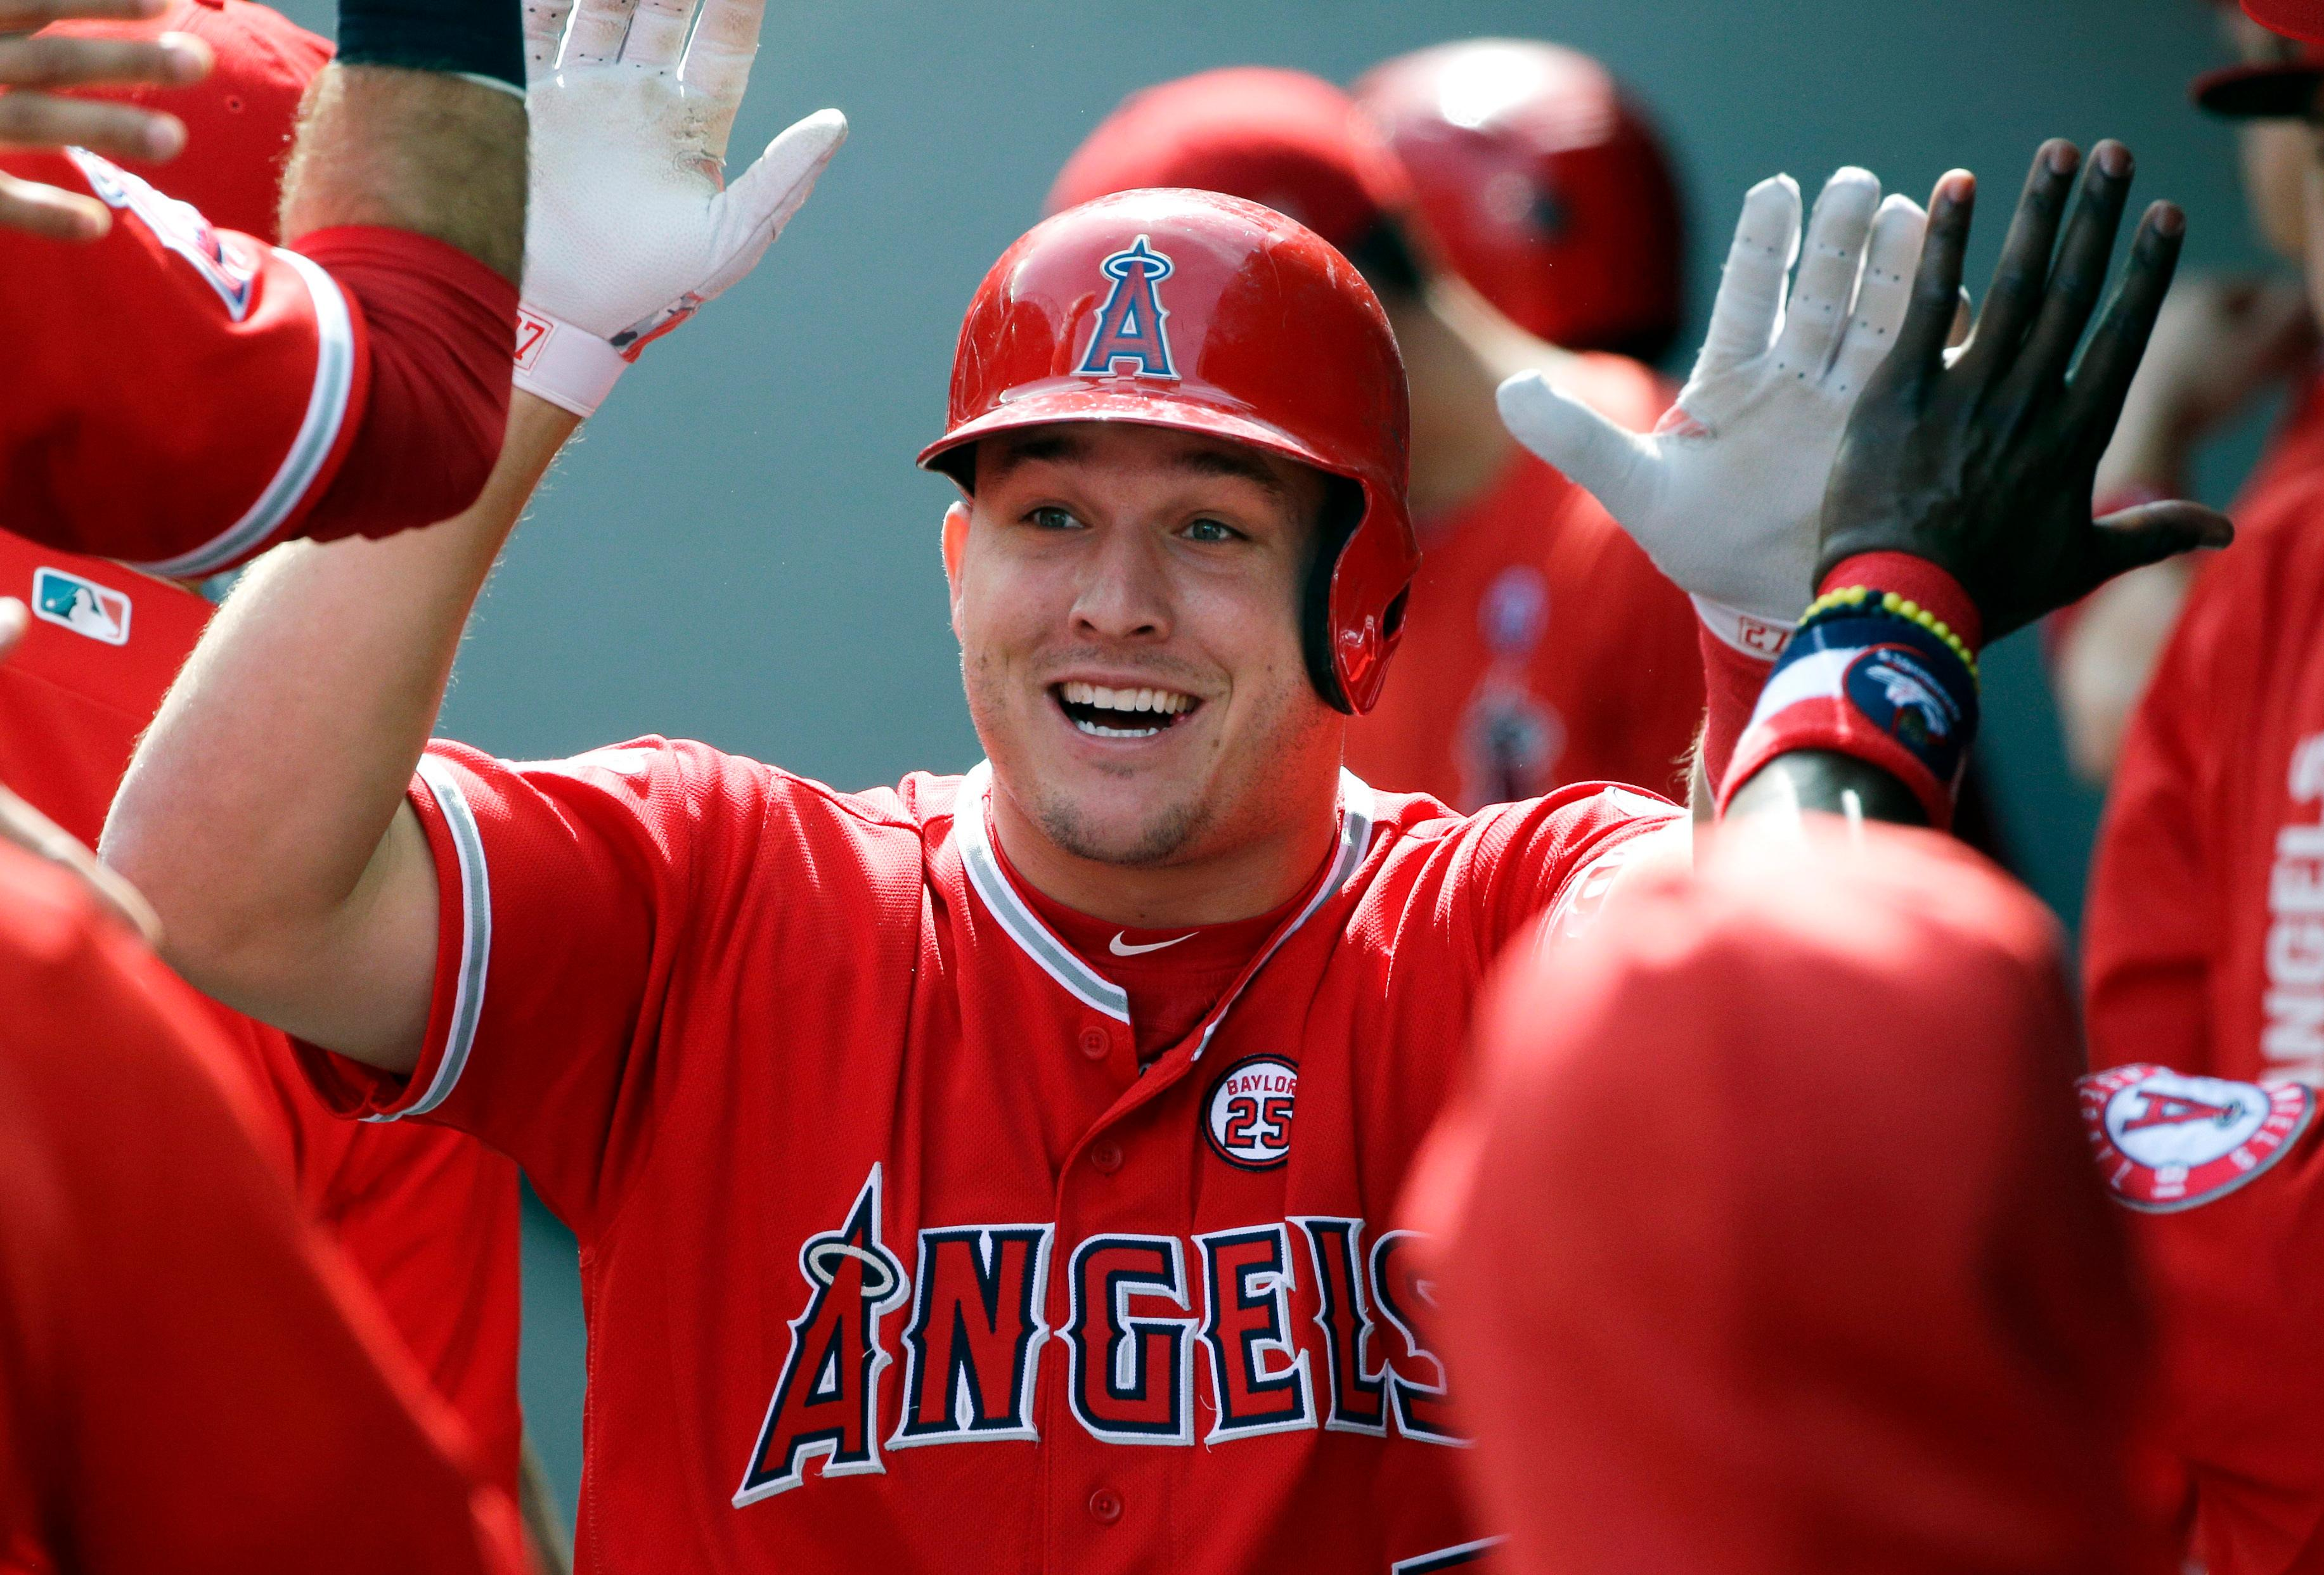 FILE - In this Sept. 10, 2017, file photo, Los Angeles Angels' Mike Trout is greeted in the dugout after hitting a solo home run in the first inning of a baseball game against the Seattle Mariners in Seattle. A person familiar with the negotiations tells The Associated Press Tuesday, March 19, 2019, that Trout and the Angels are close to finalizing a record $432 million, 12-year contract that would shatter the record for the largest deal in North American sports history.  (AP Photo/Ted S. Warren, File)